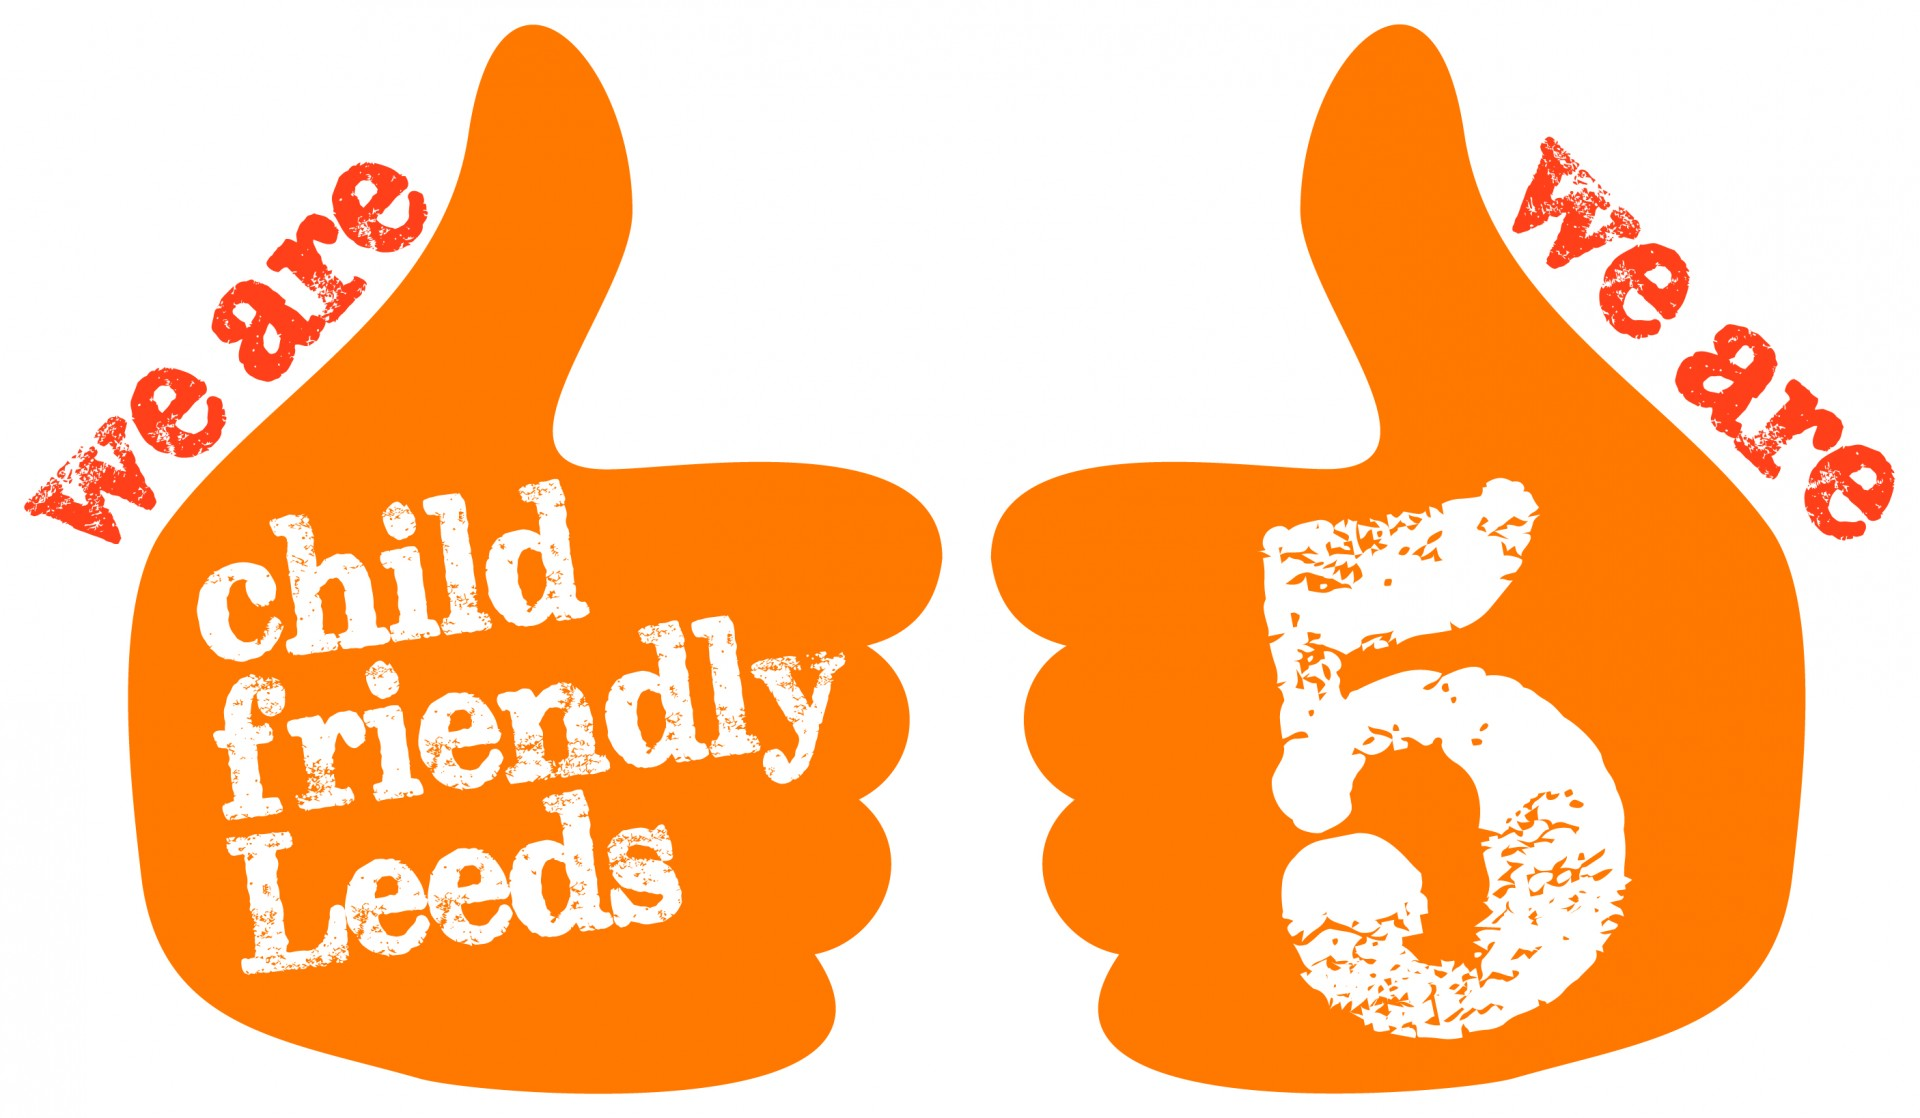 Child Friendly Leeds 5th Birthday logo